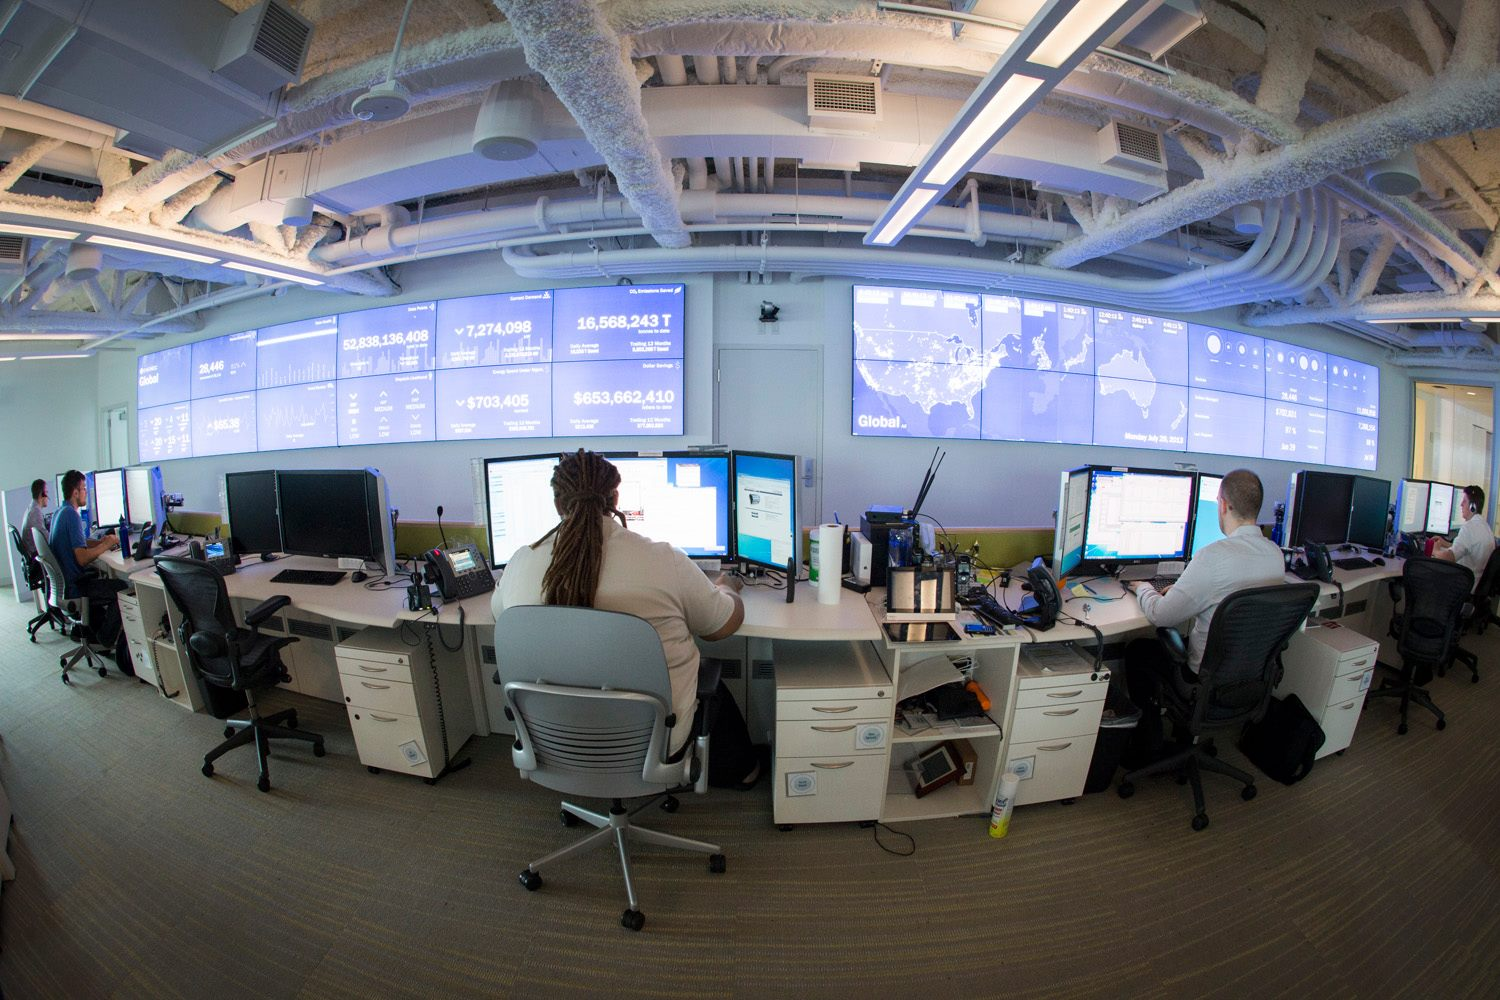 EnerNOC, Inc. the world's largest provider of demand response software and services, announced that Kolon Industries has selected EnerNOC as its trusted demand response provider. (image credit: EnerNOC)